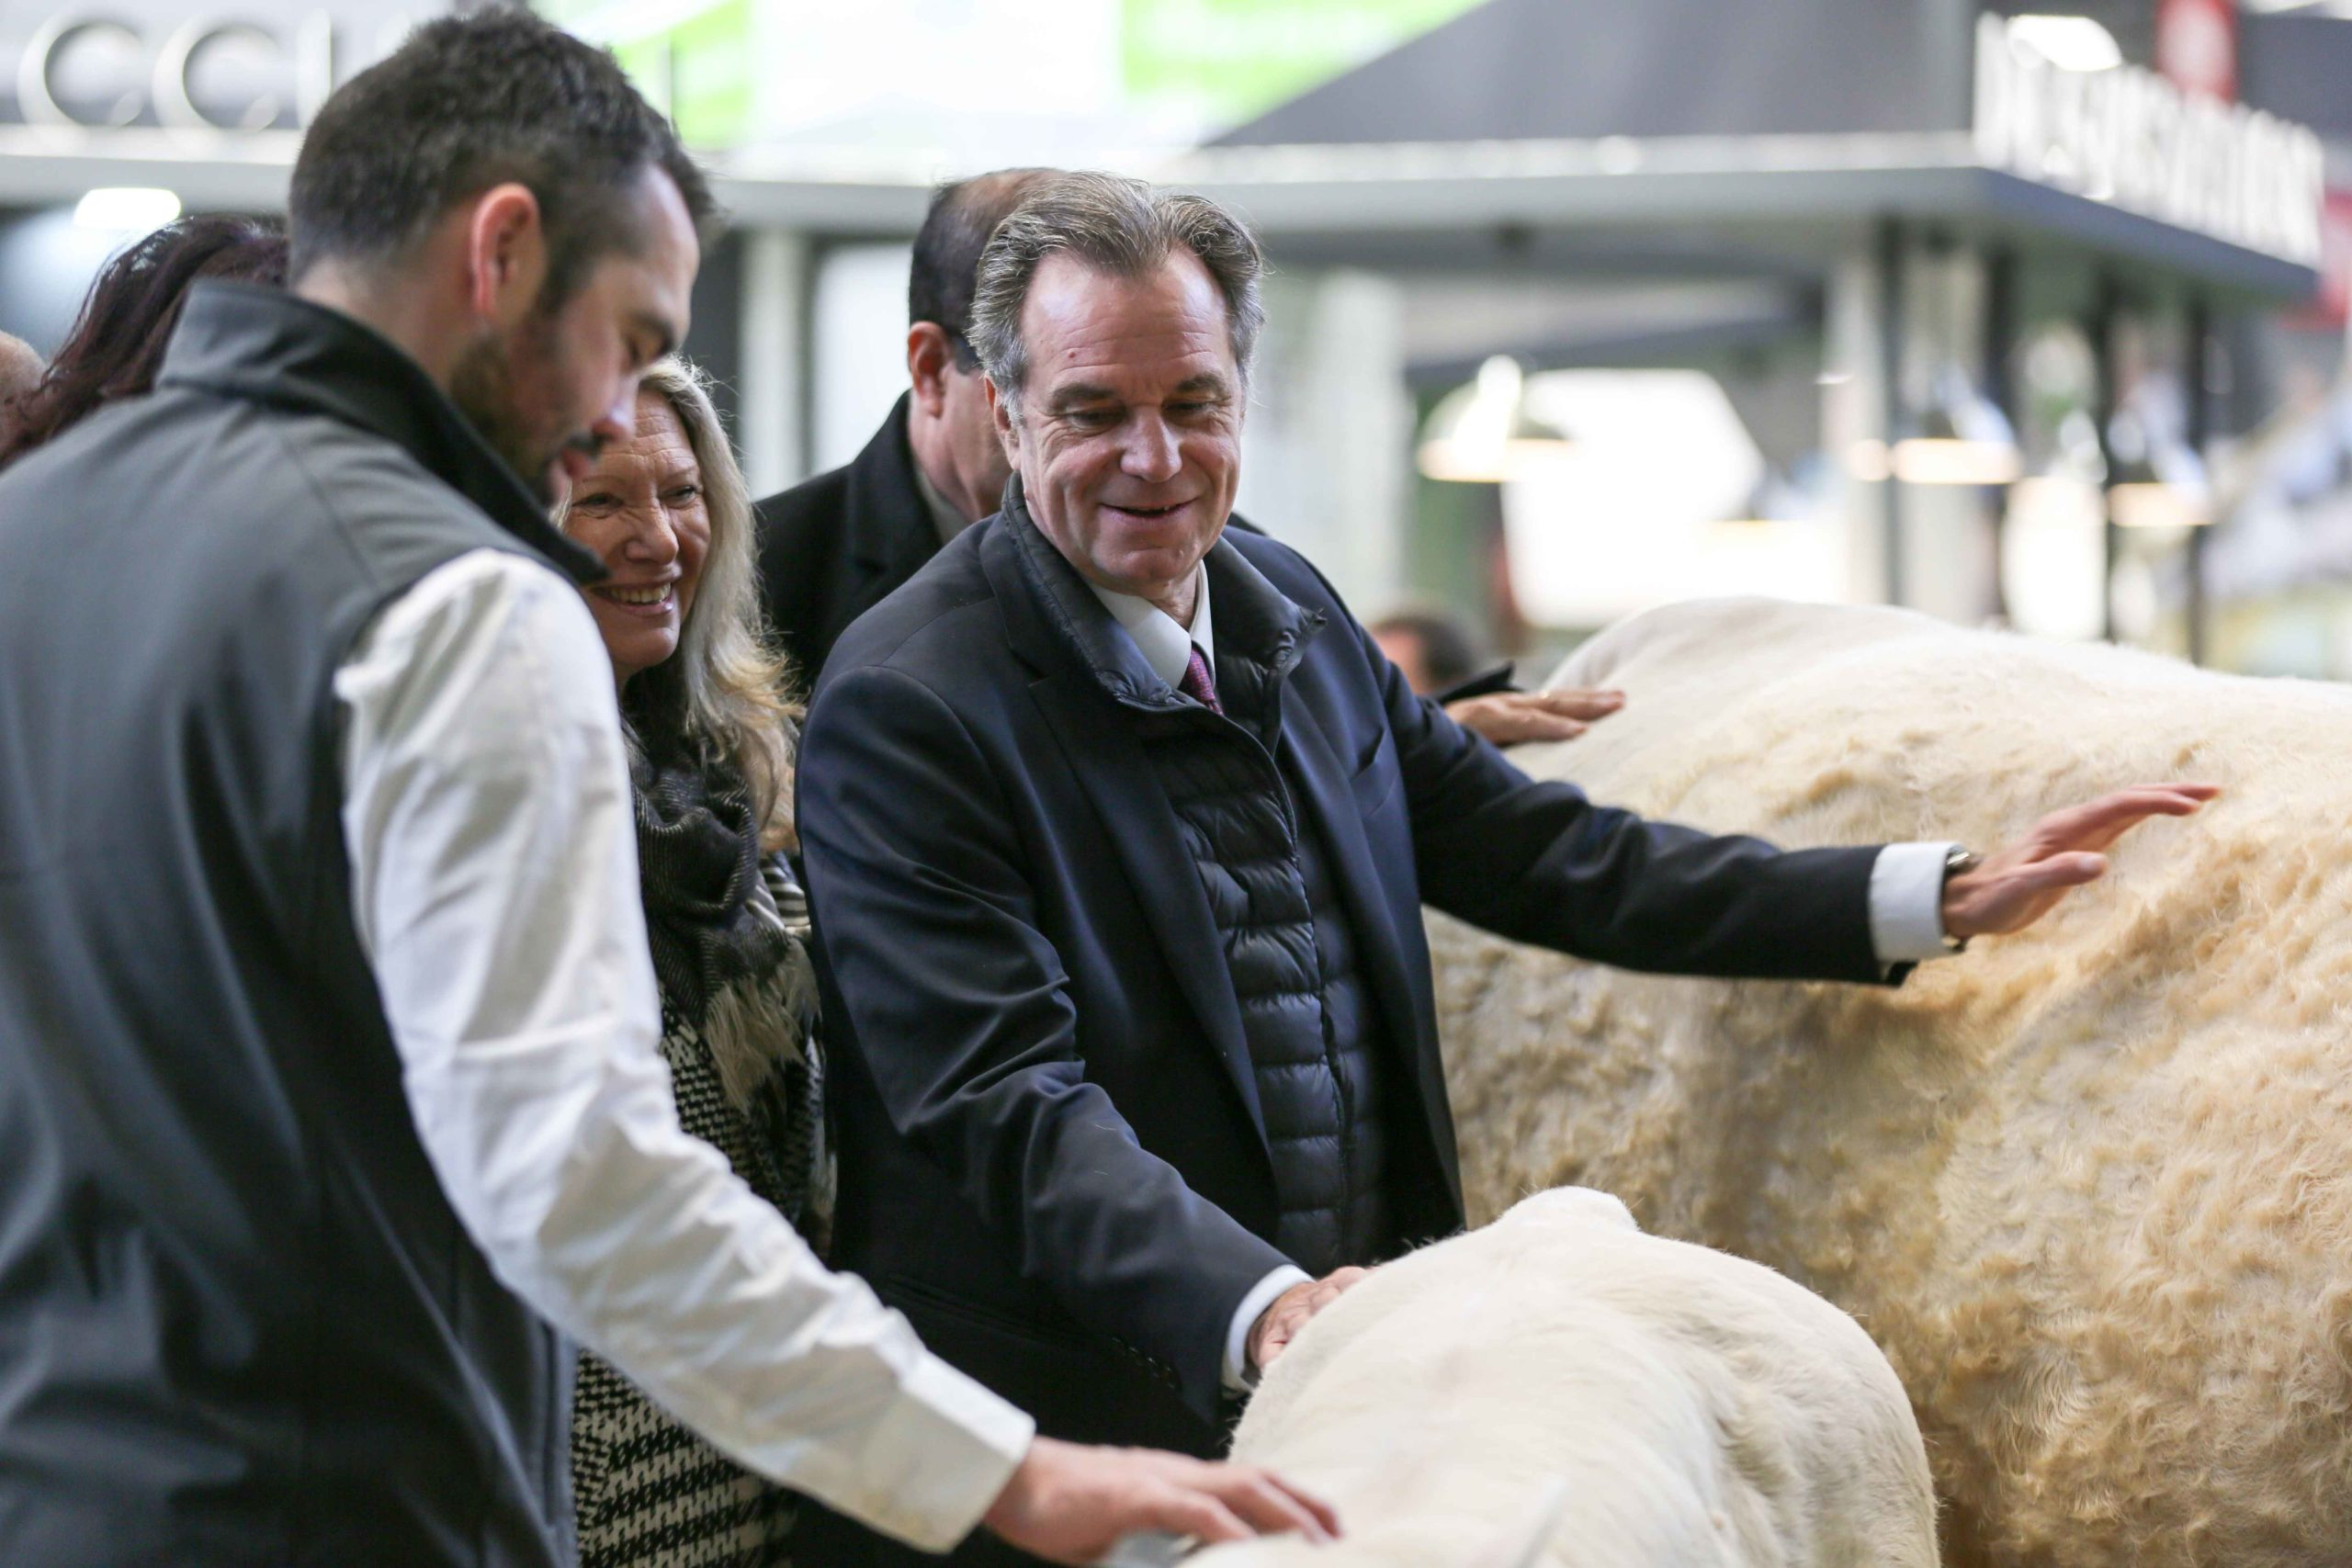 The President of the Regional Council of the Provence-Alpes-Cote-d'Azur region Renaud Muselier (C) visits the international Agriculture Fair in Paris on February 25, 2020.